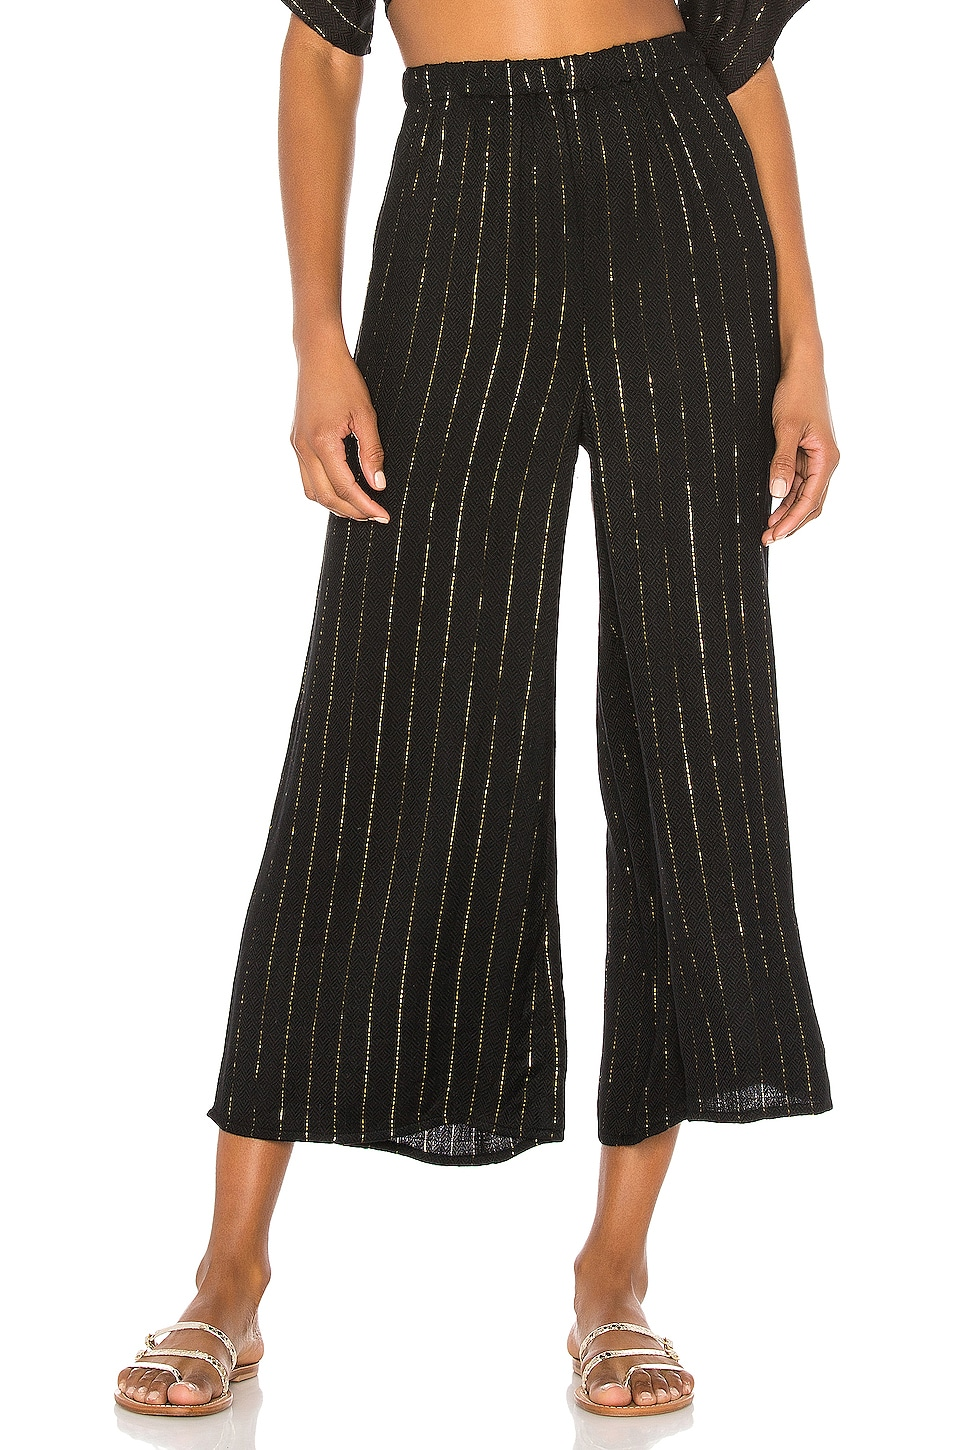 AMUSE SOCIETY Dusk Till Dawn Wide Leg Pant in Black